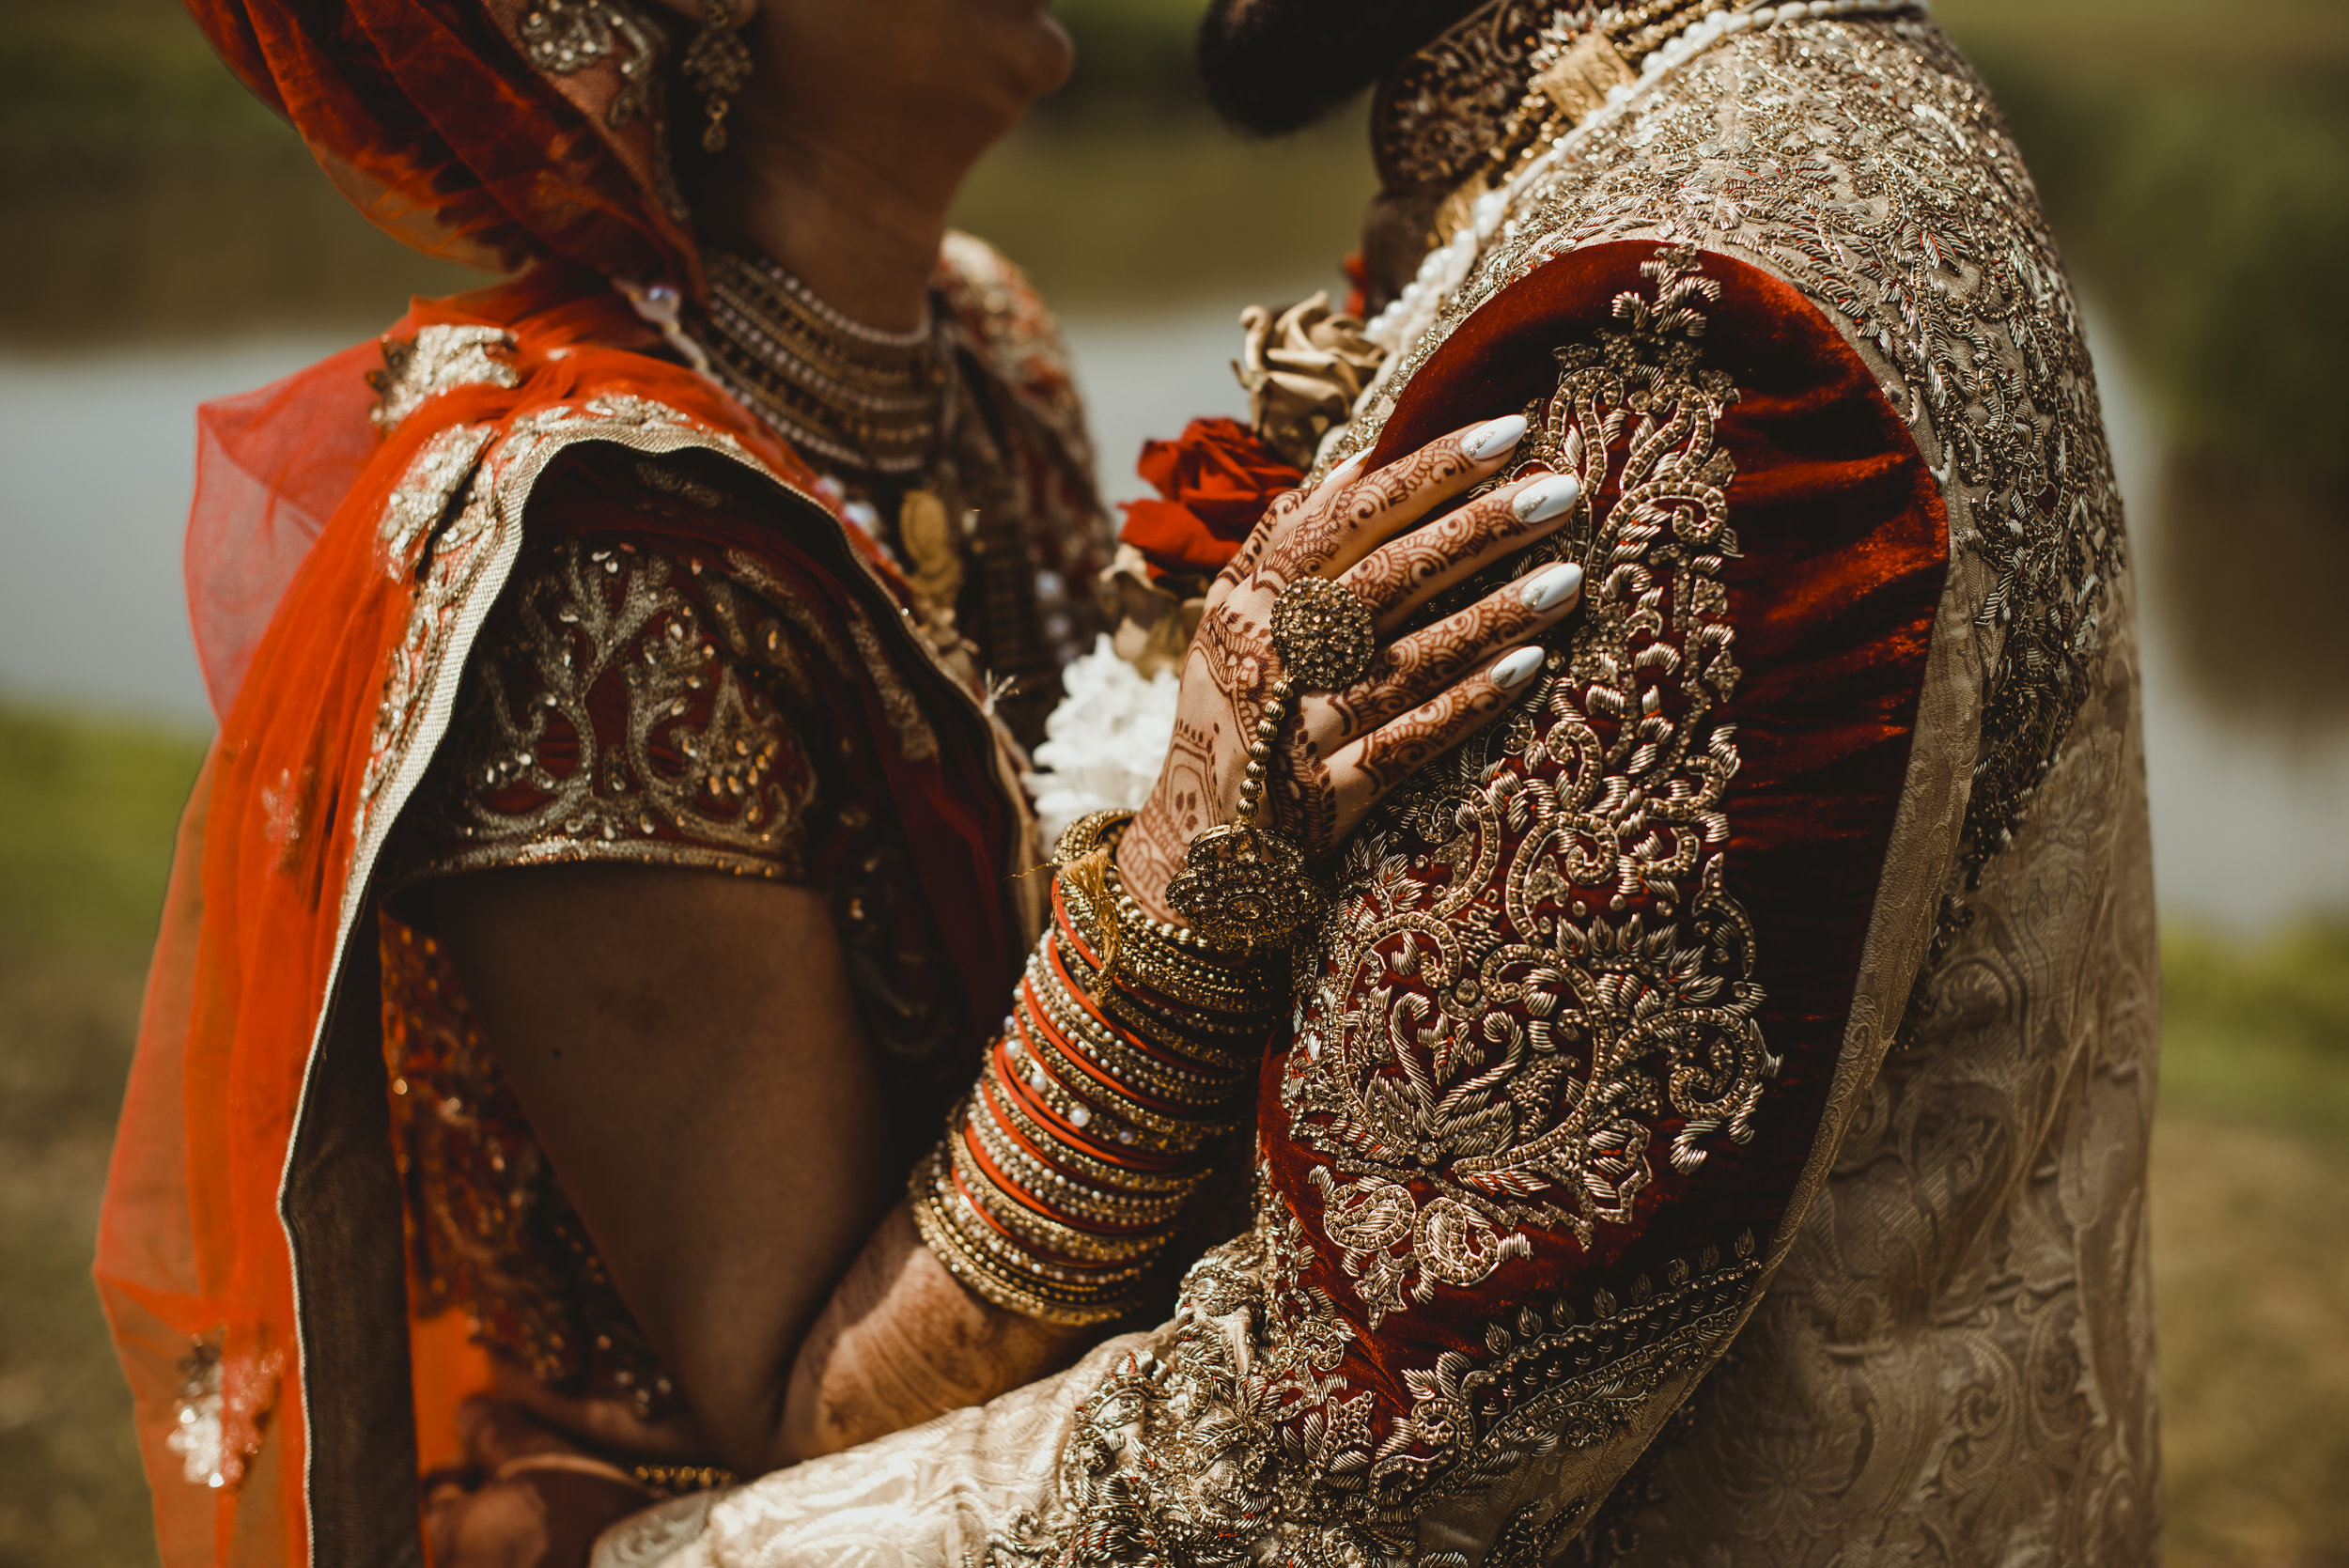 N&J_MILTON_KEYNES_WEDDING_LONDON_PHOTOGRAPHER_ASIAN_WEDDING-786.JPG